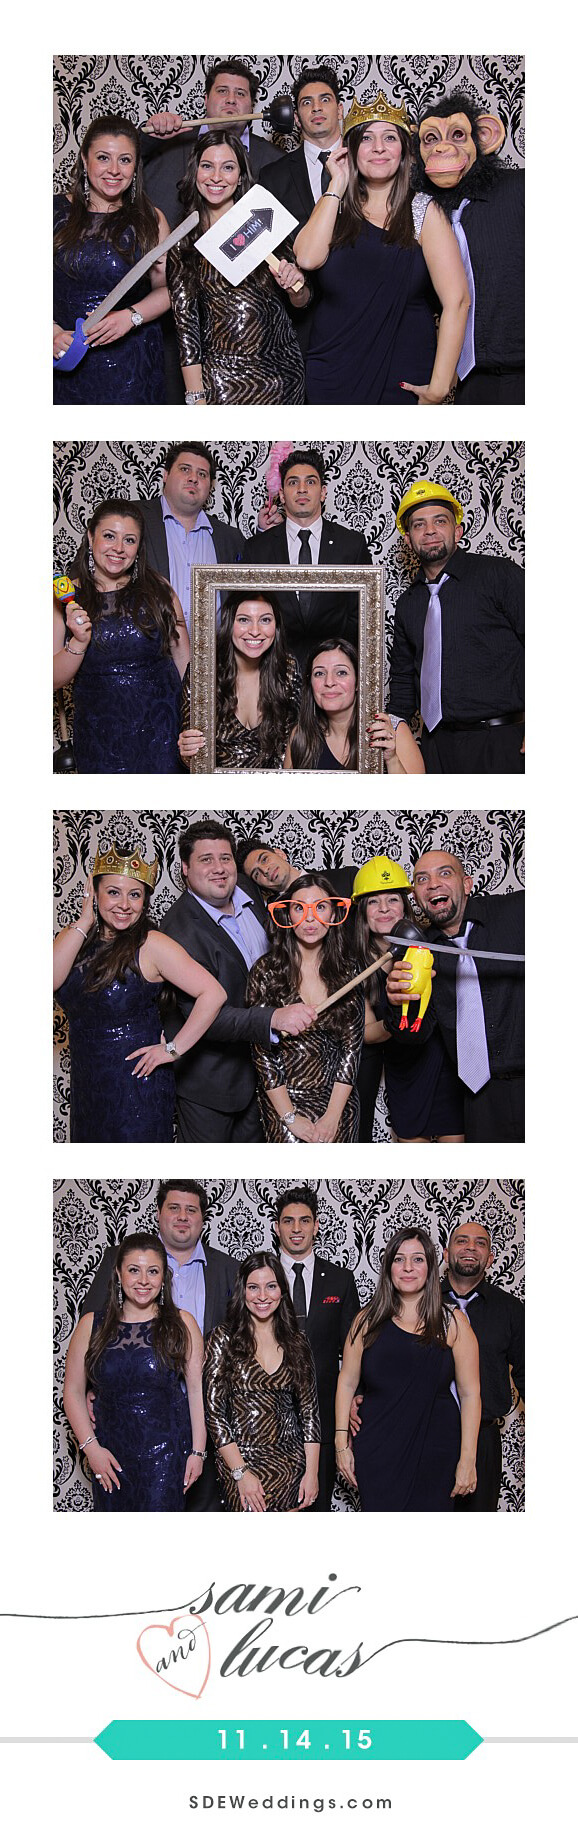 Toronto Paradise Banquet Hall Wedding Photo Booth Rental 7